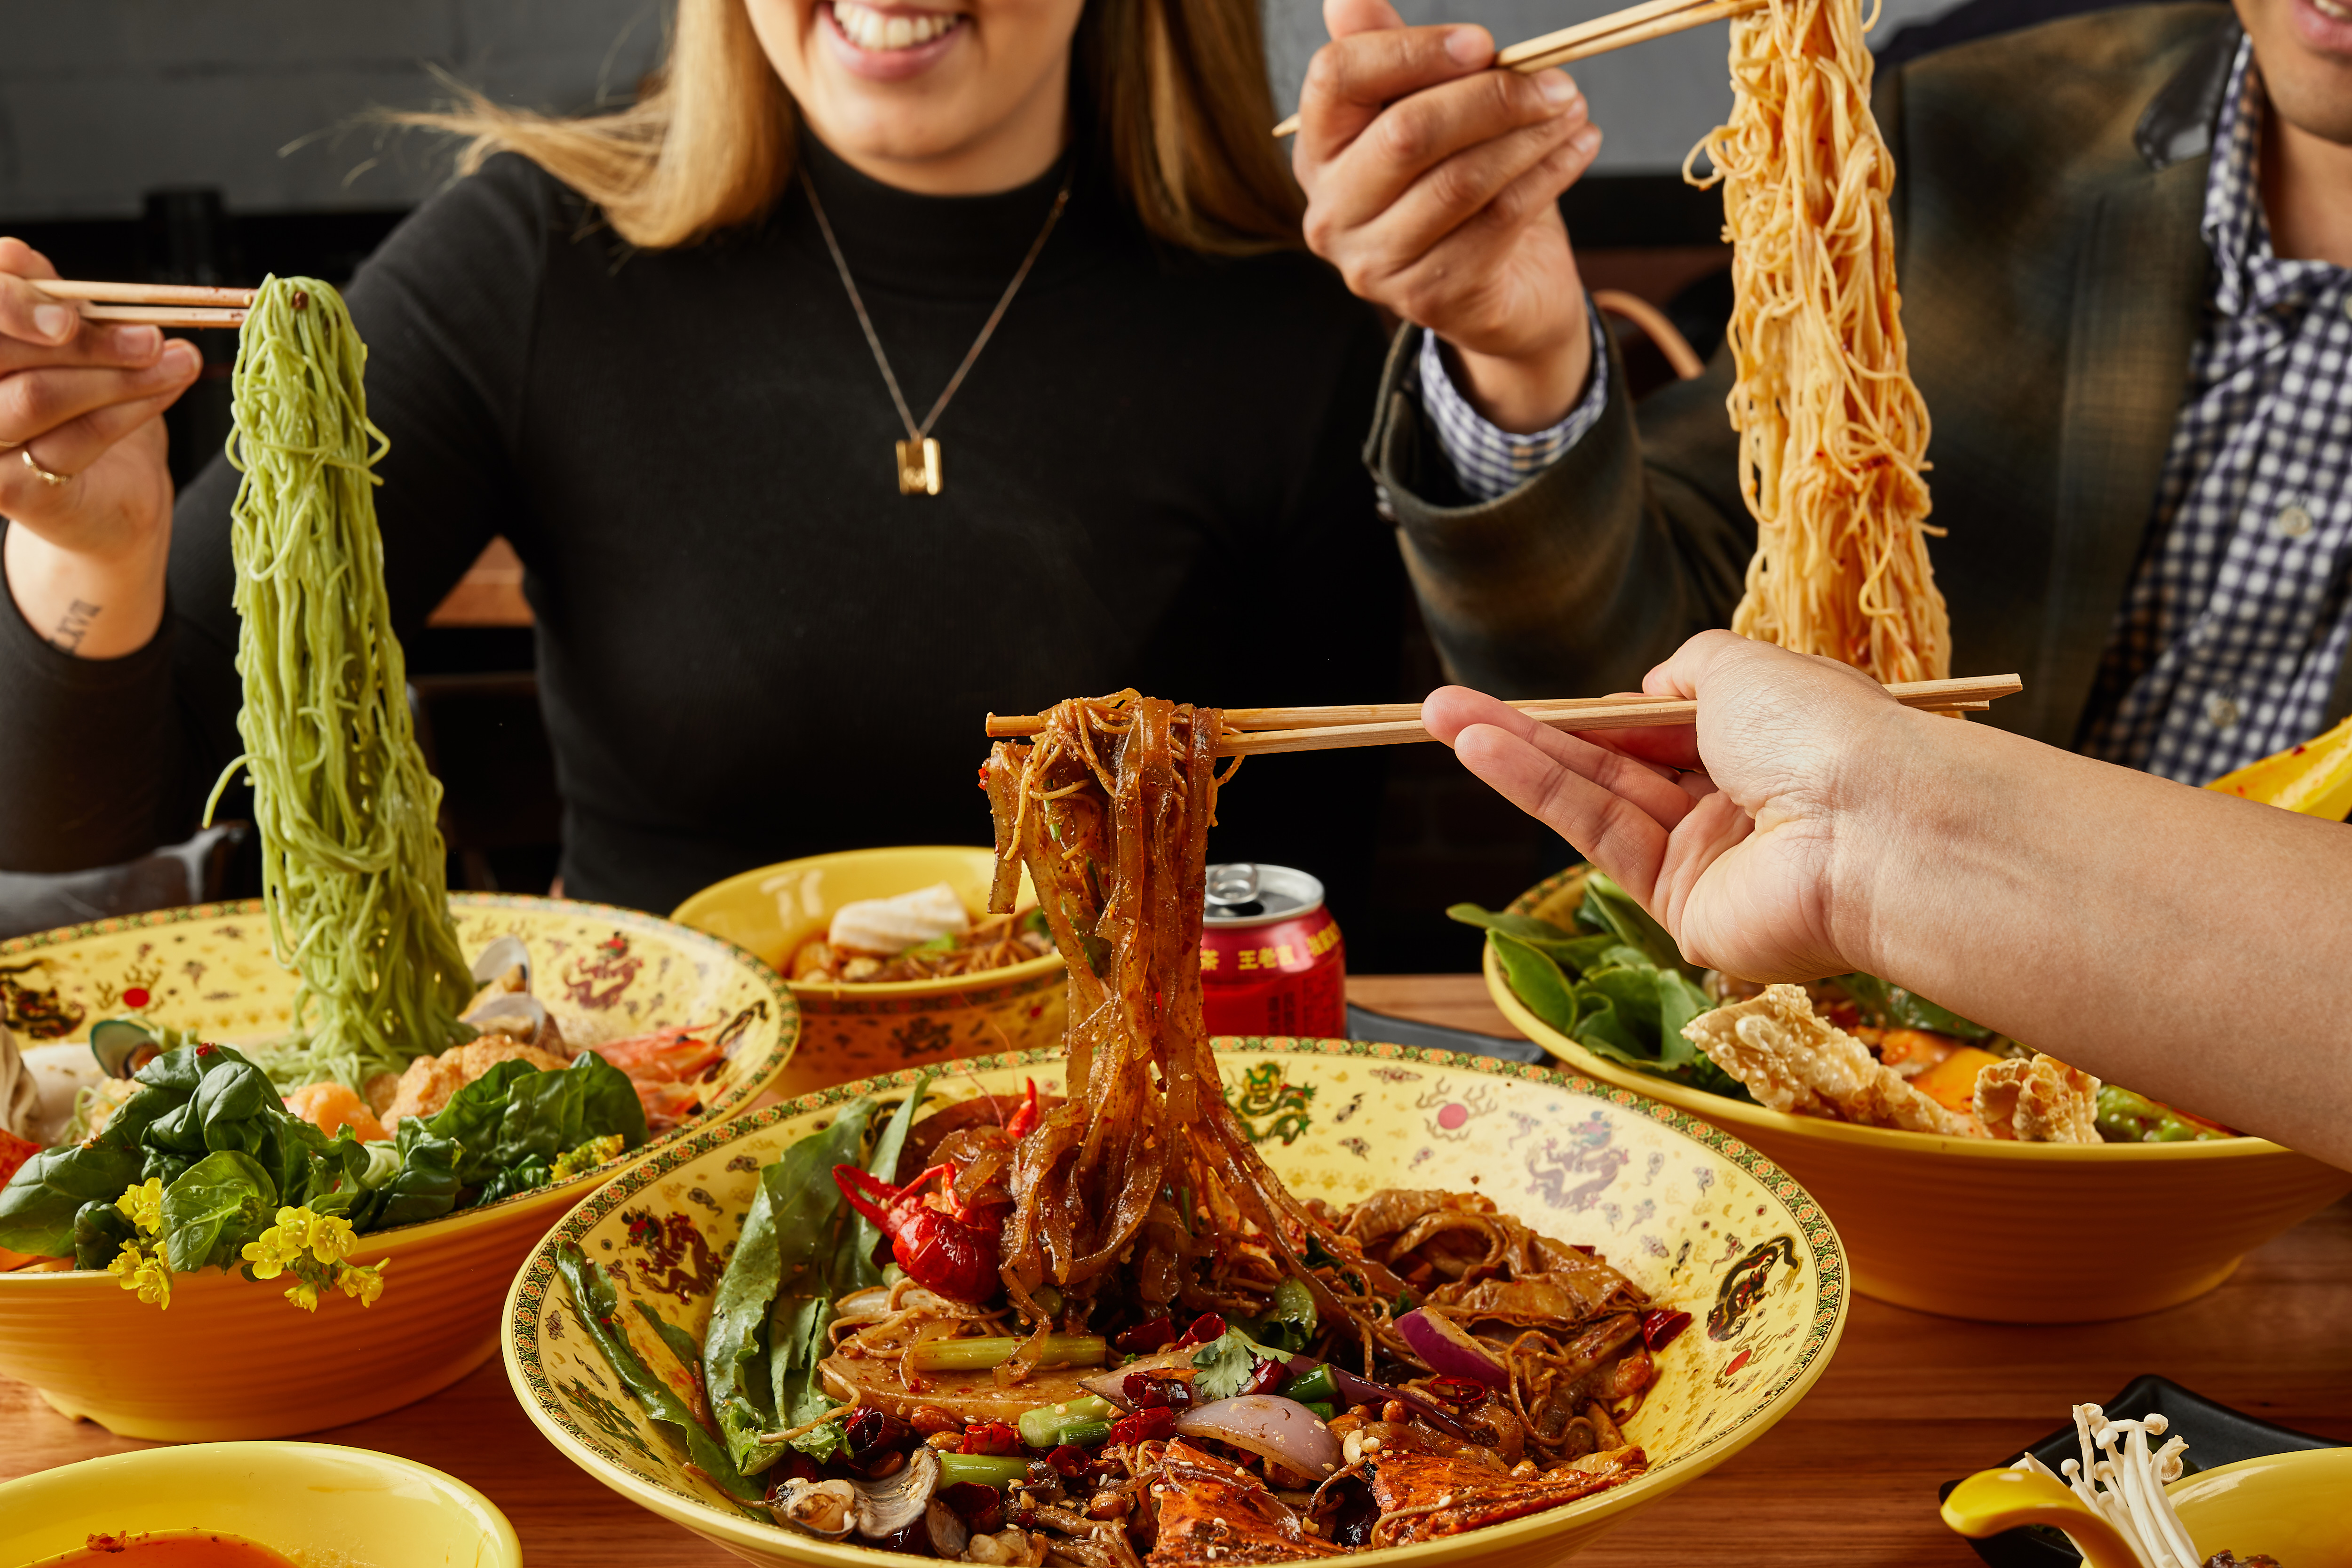 three sets of chopsticks picking up noodles in three bowls of soup at a table